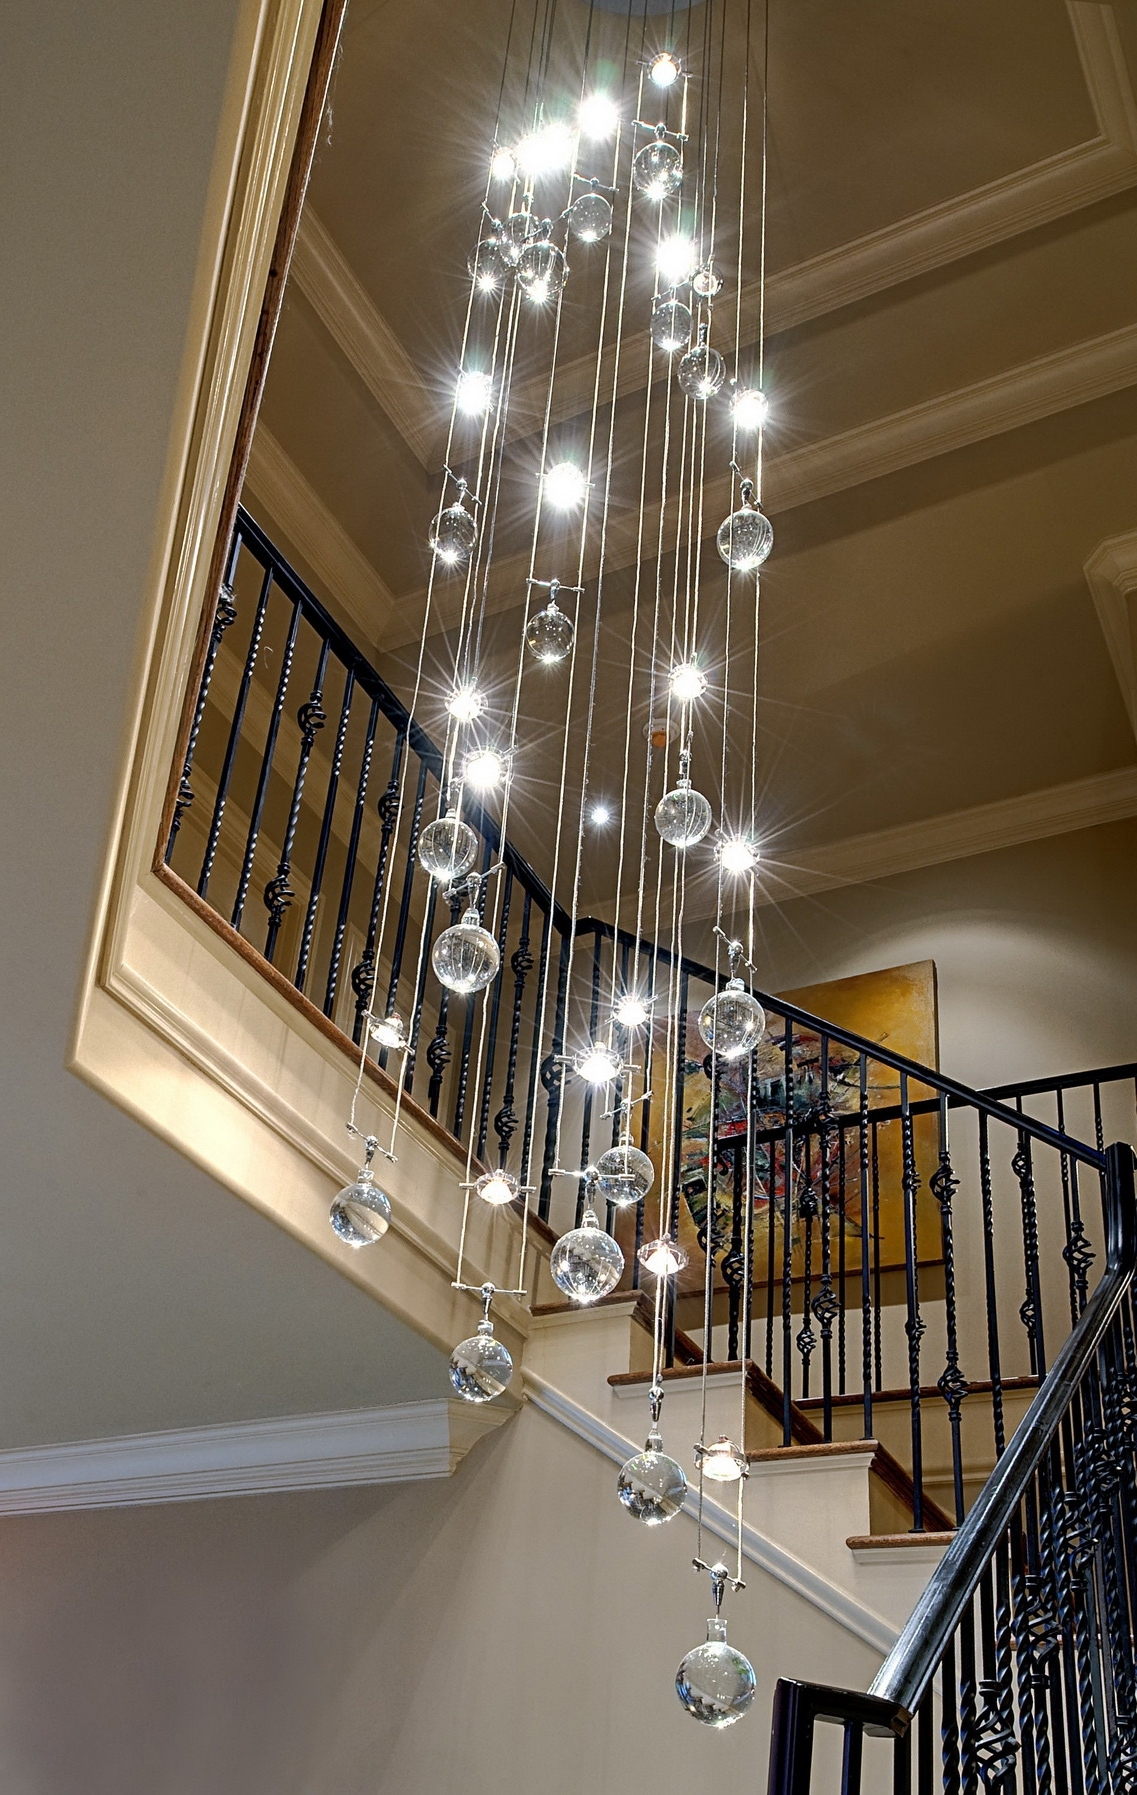 Famous Modern Chandeliers Throughout Interior: Modern Chandeliers For High Ceiling With Sparkly Crystals (View 7 of 15)